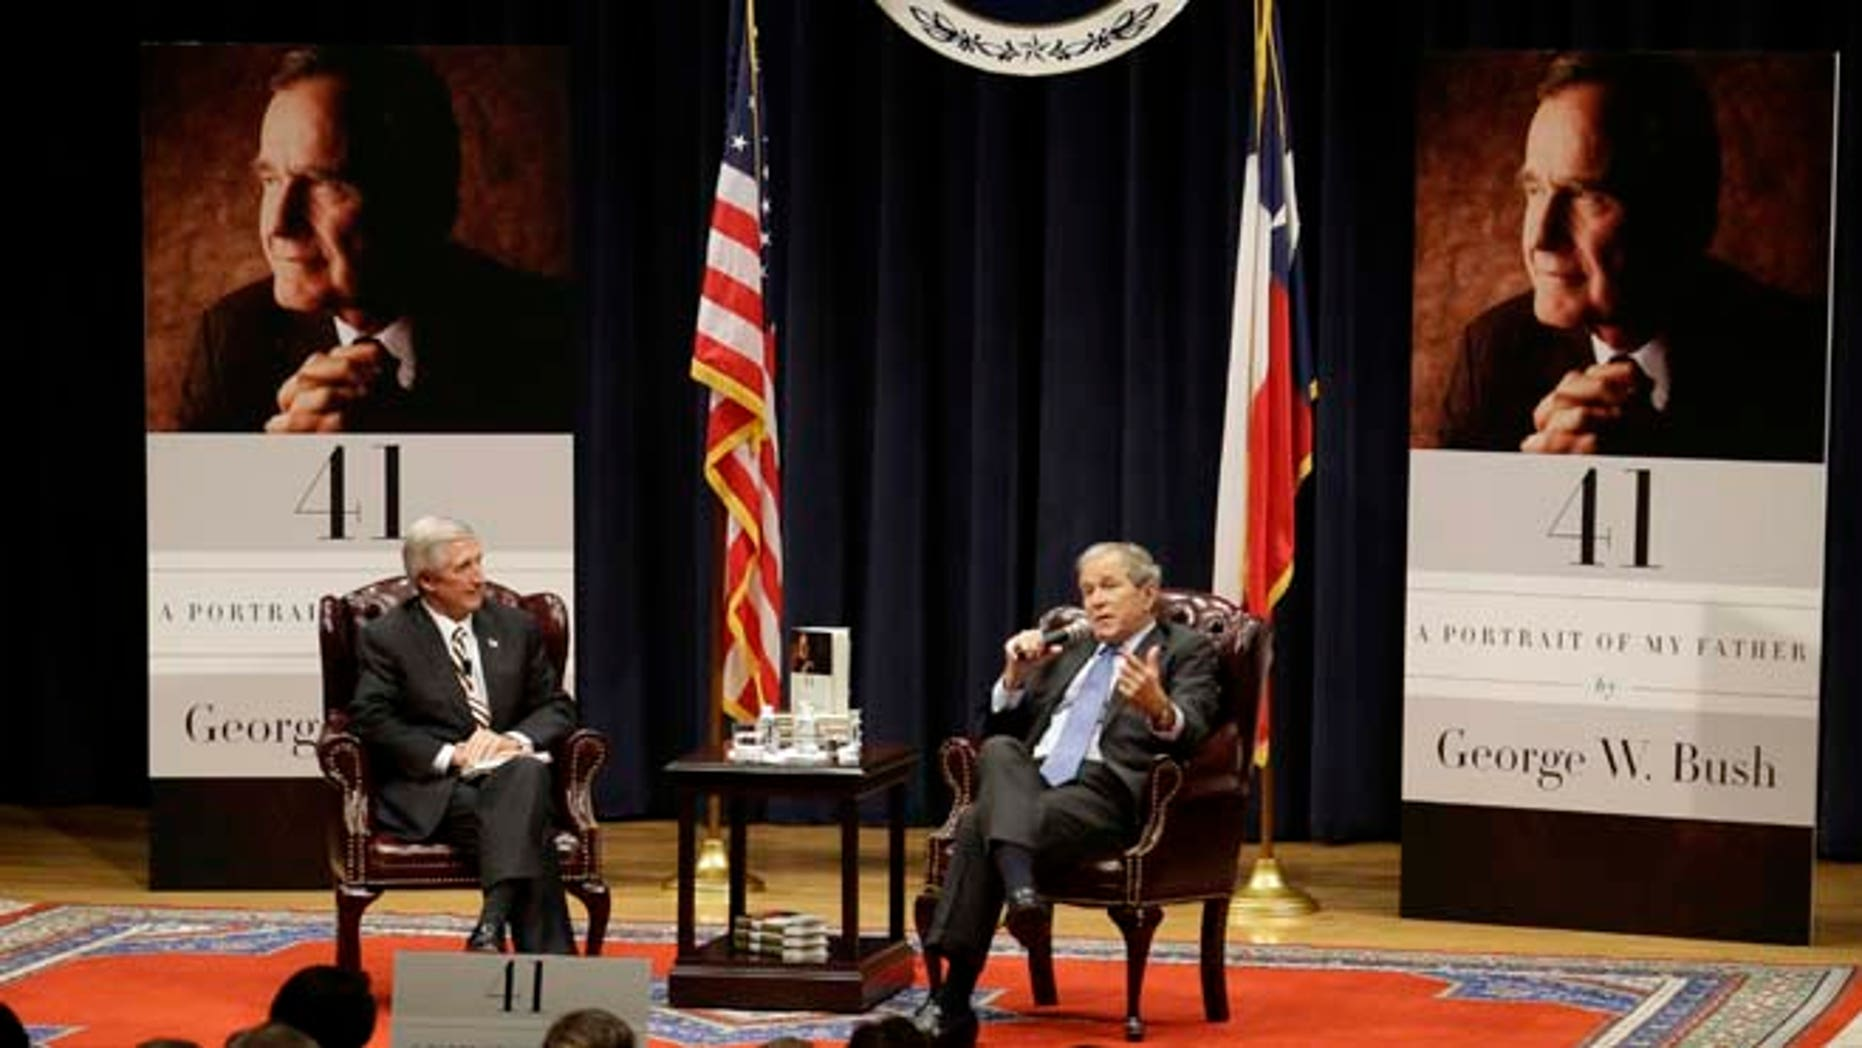 """In this Tuesday, Nov. 11, 2014 photo, former President George W. Bush  discusses his new book """"41: A Portrait of My Father"""" with Andrew Card, his former chief of staff at his father's George H.W. Bush Presidential Library in College Station, Texas."""